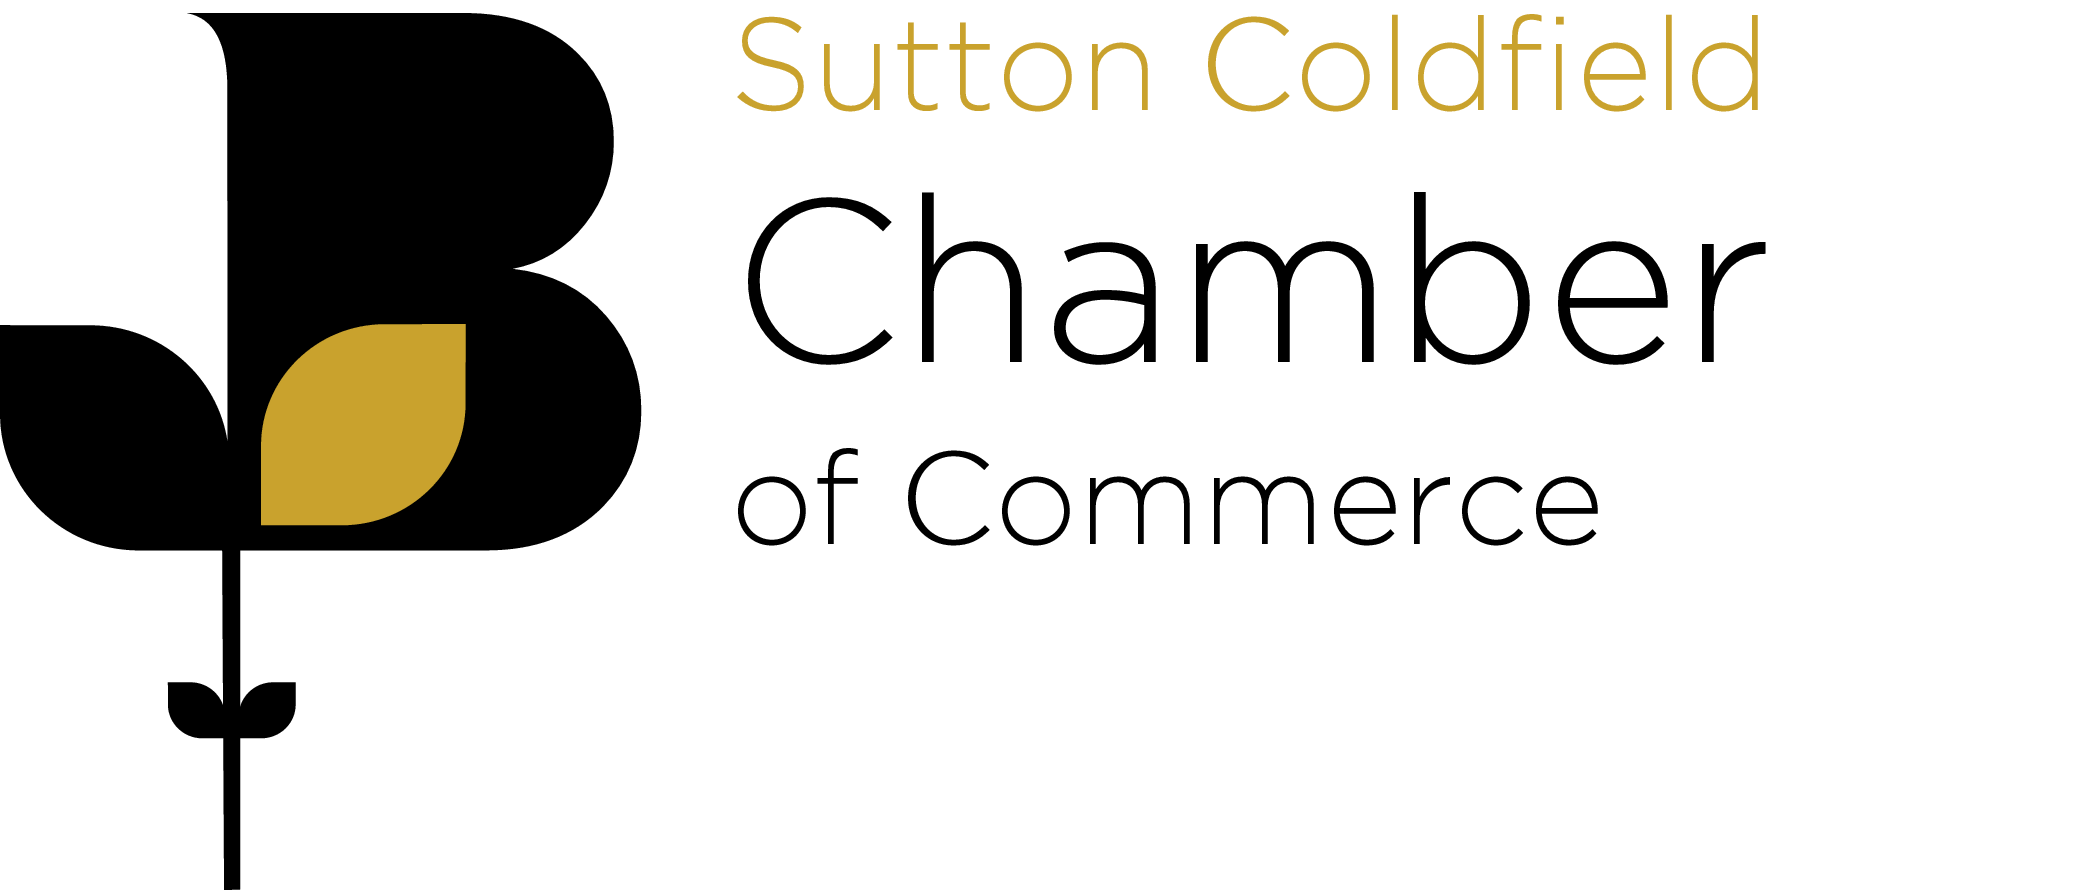 Sutton Coldfield Chamber of Commerce